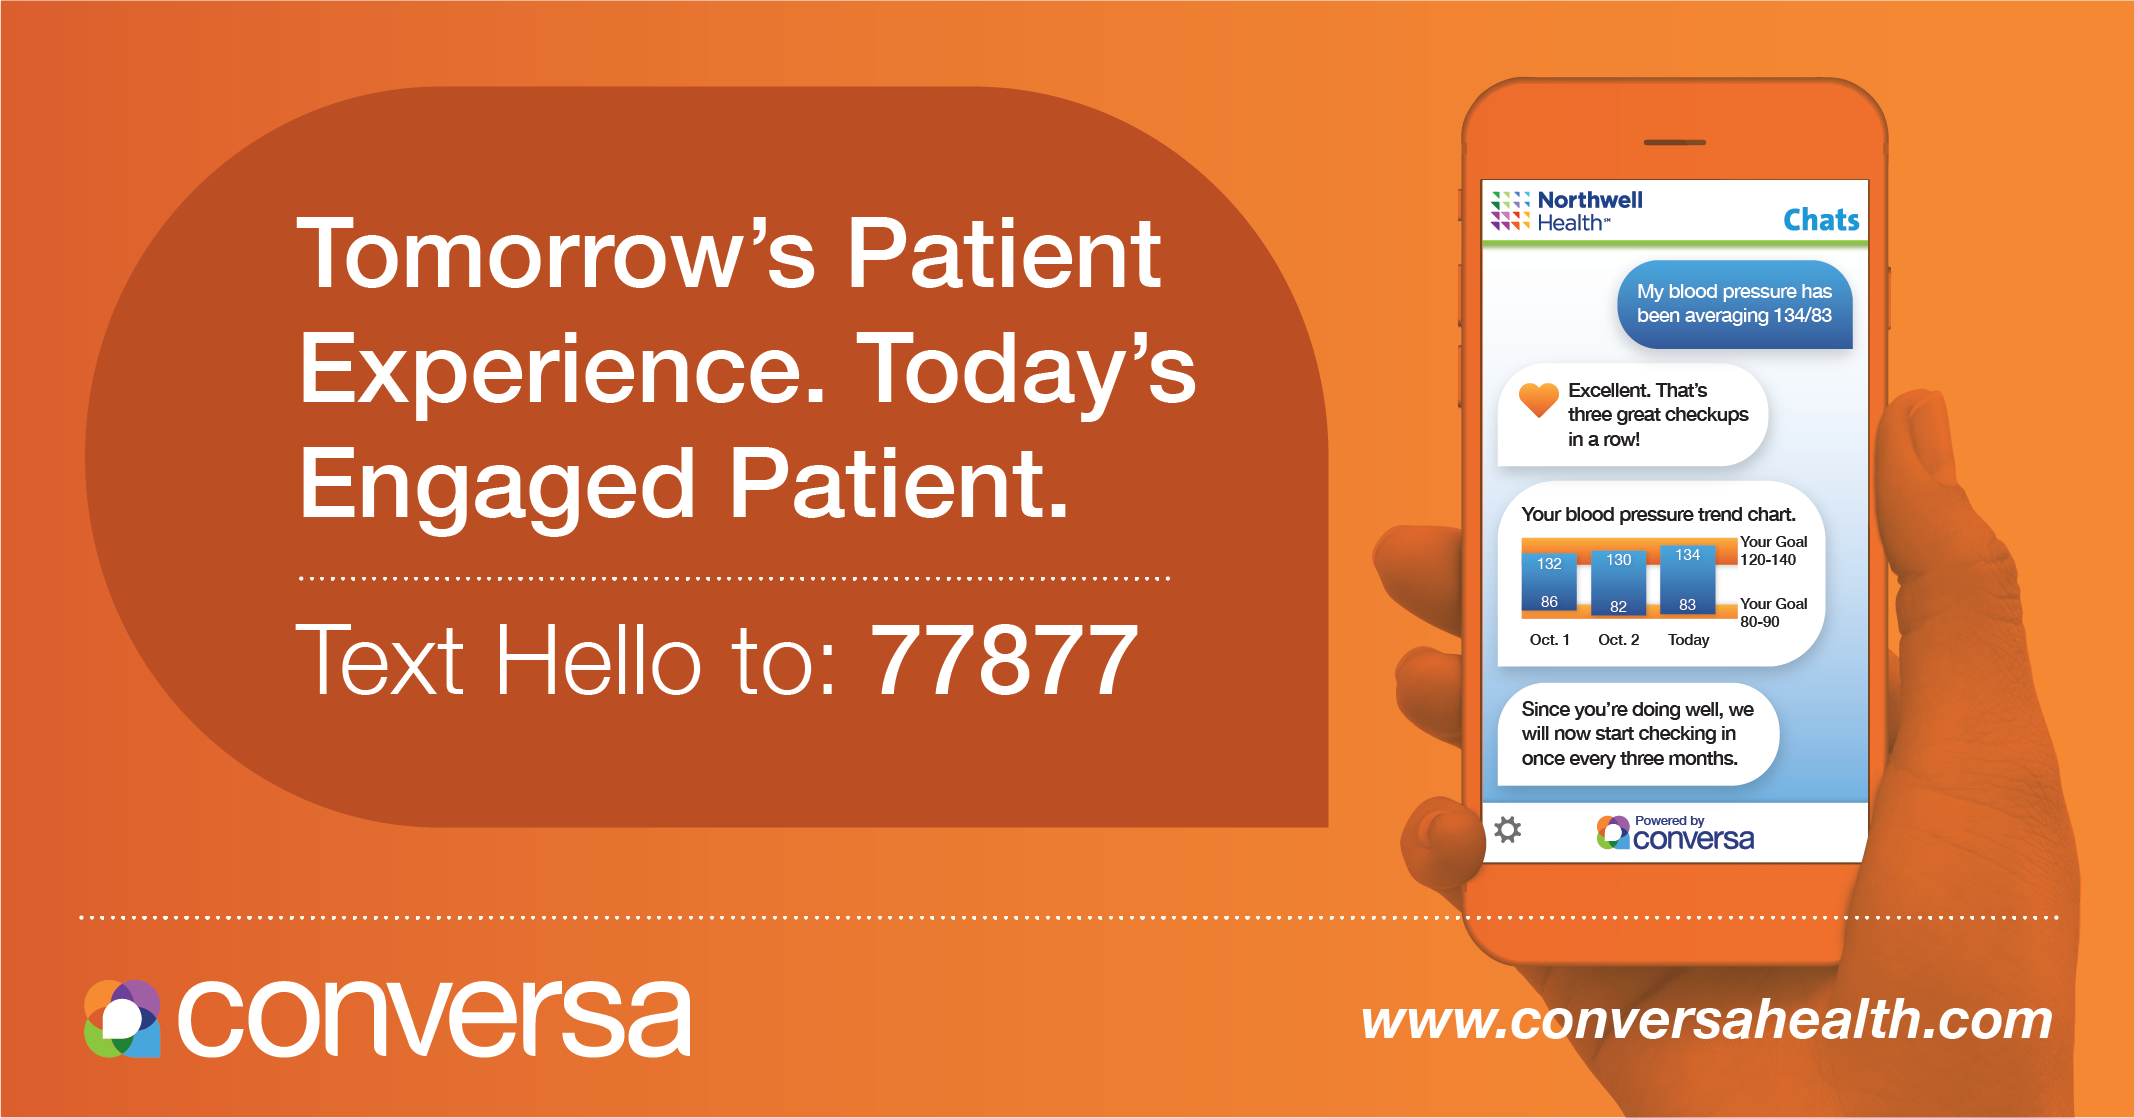 Tomorrow's Patient Experience. Today's Engaged Patient